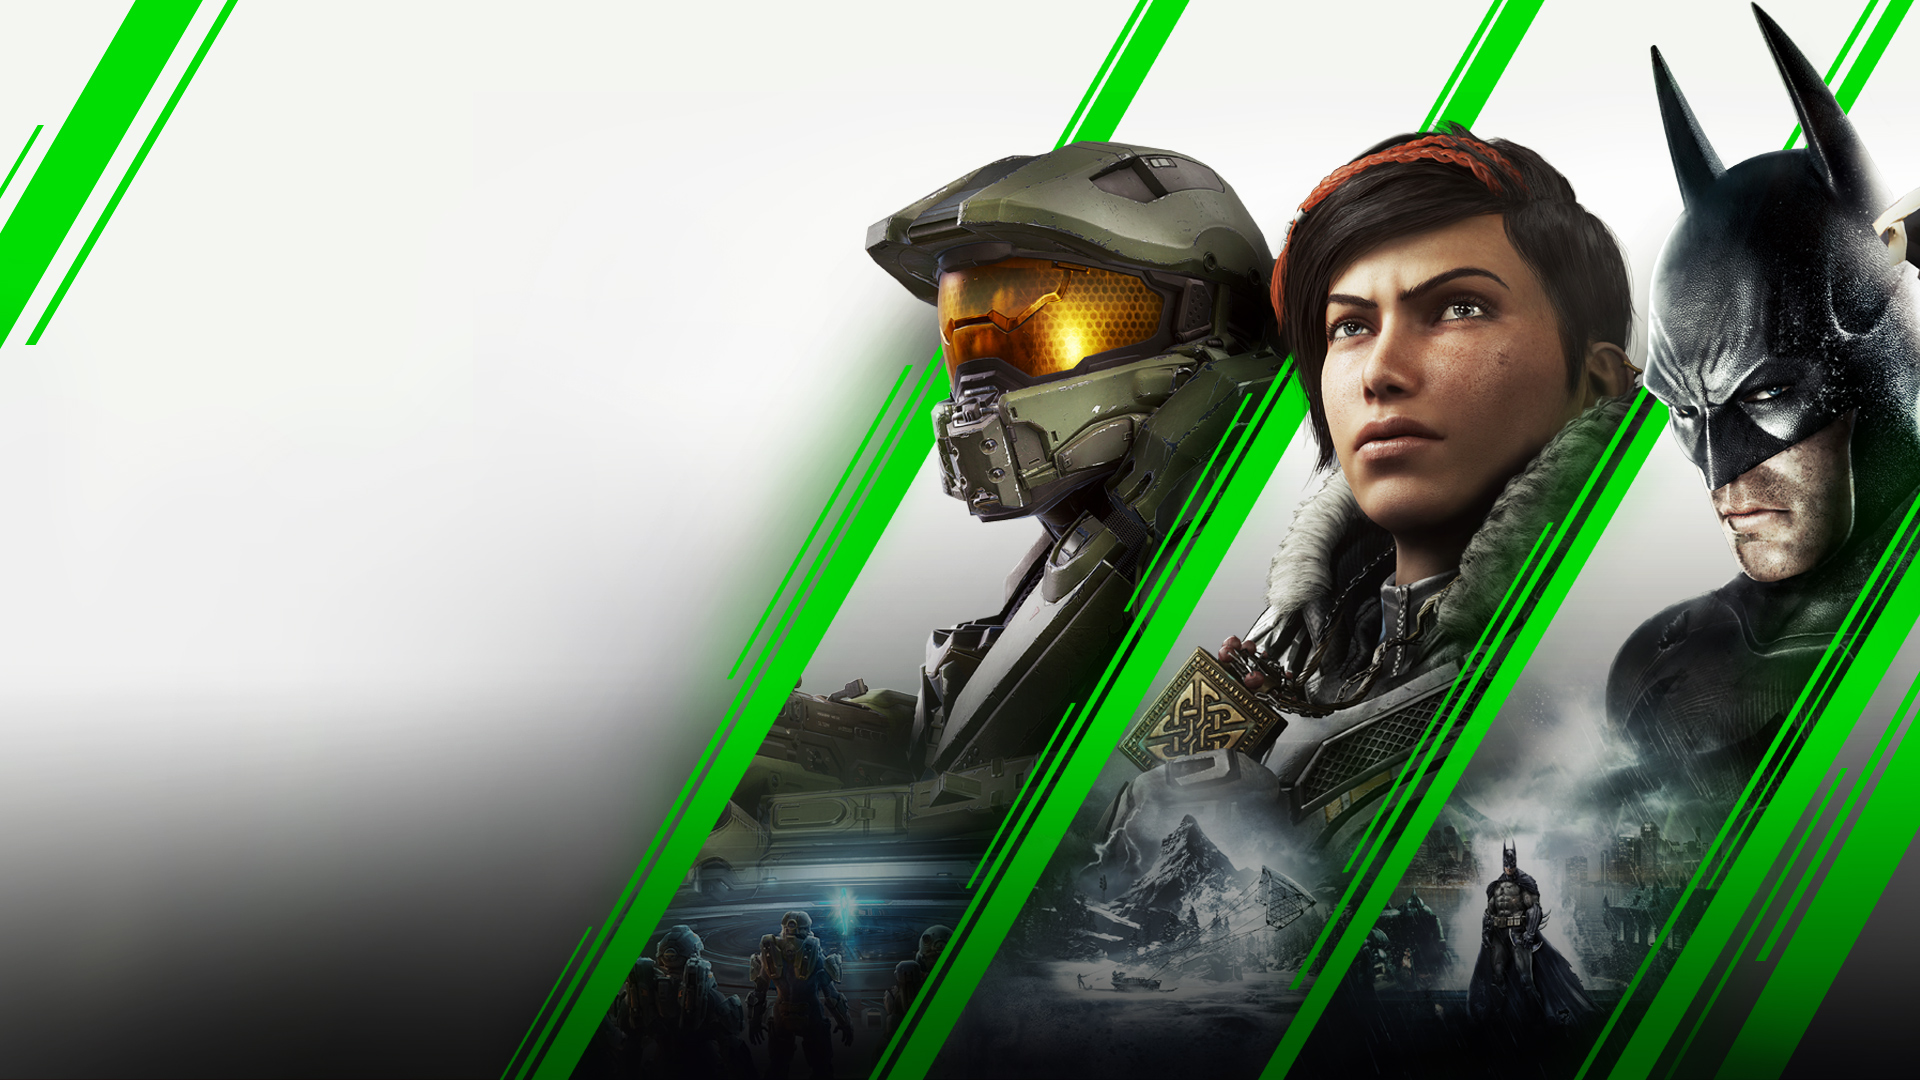 Stylized green diagonal lines separating Master Chief, Kait Diaz, and Batman.